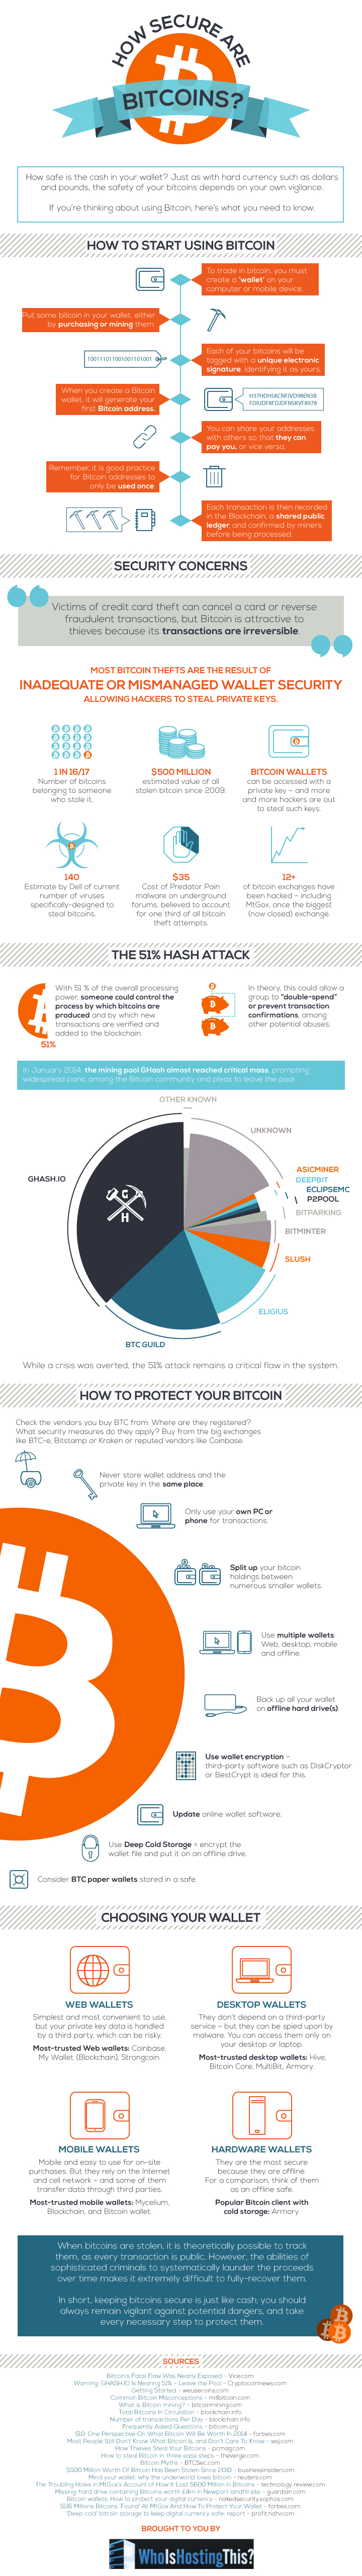 how to get started with bitcoin infographic